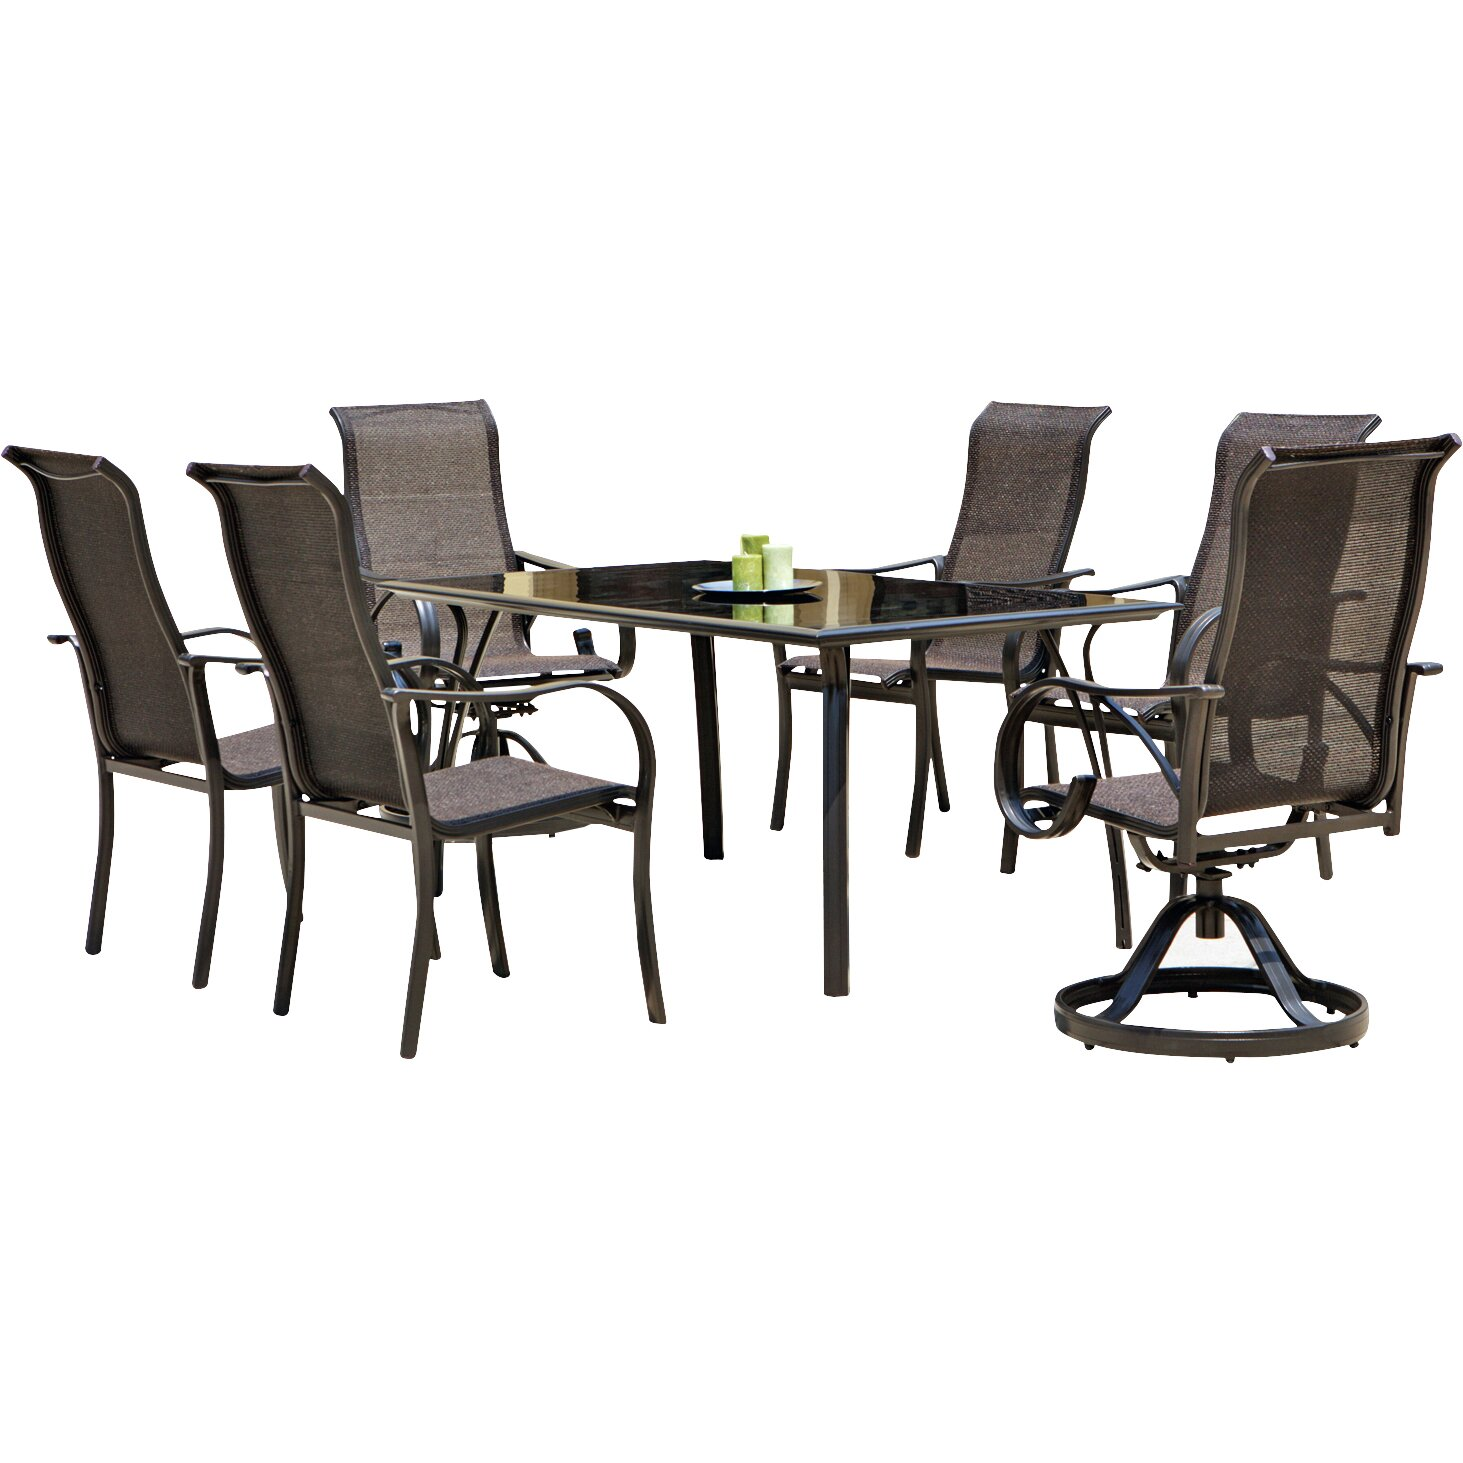 Acme Coronado Dining Room Furniture Decor